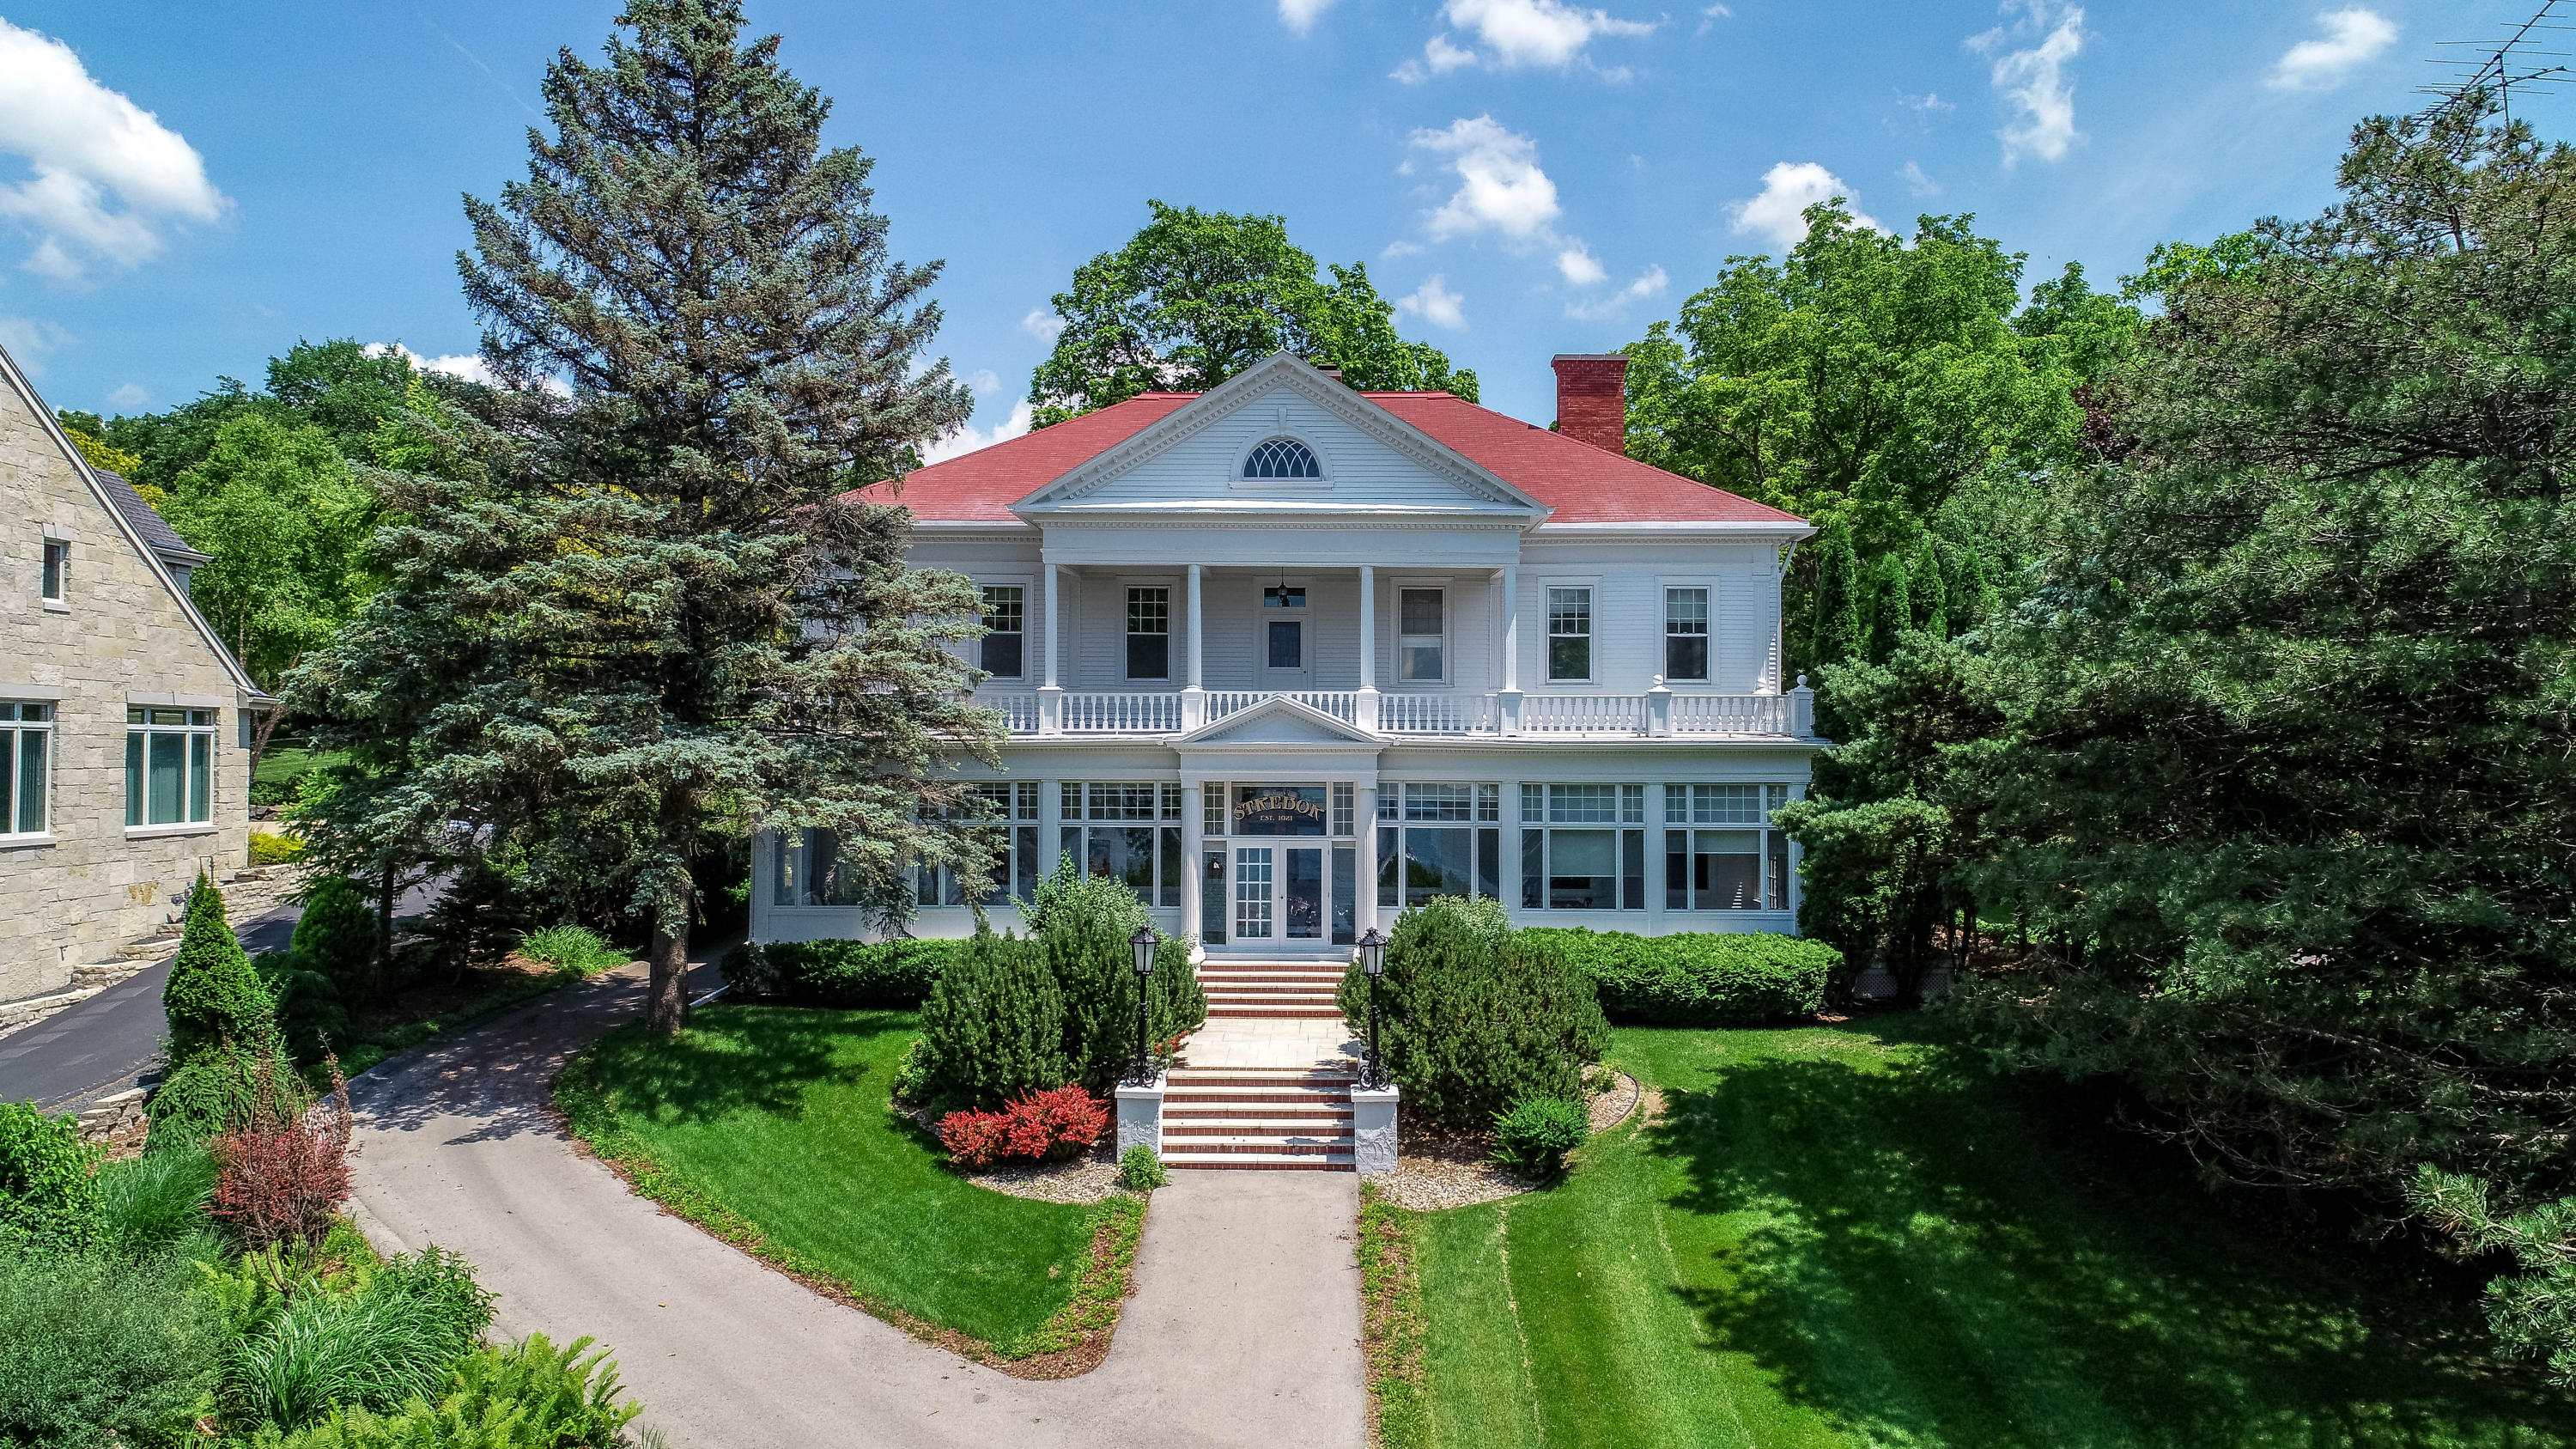 W278N2725 Rocky Point Rd, Pewaukee, Wisconsin 53072, 6 Bedrooms Bedrooms, ,2 BathroomsBathrooms,Single-Family,For Sale,Rocky Point Rd,1566117